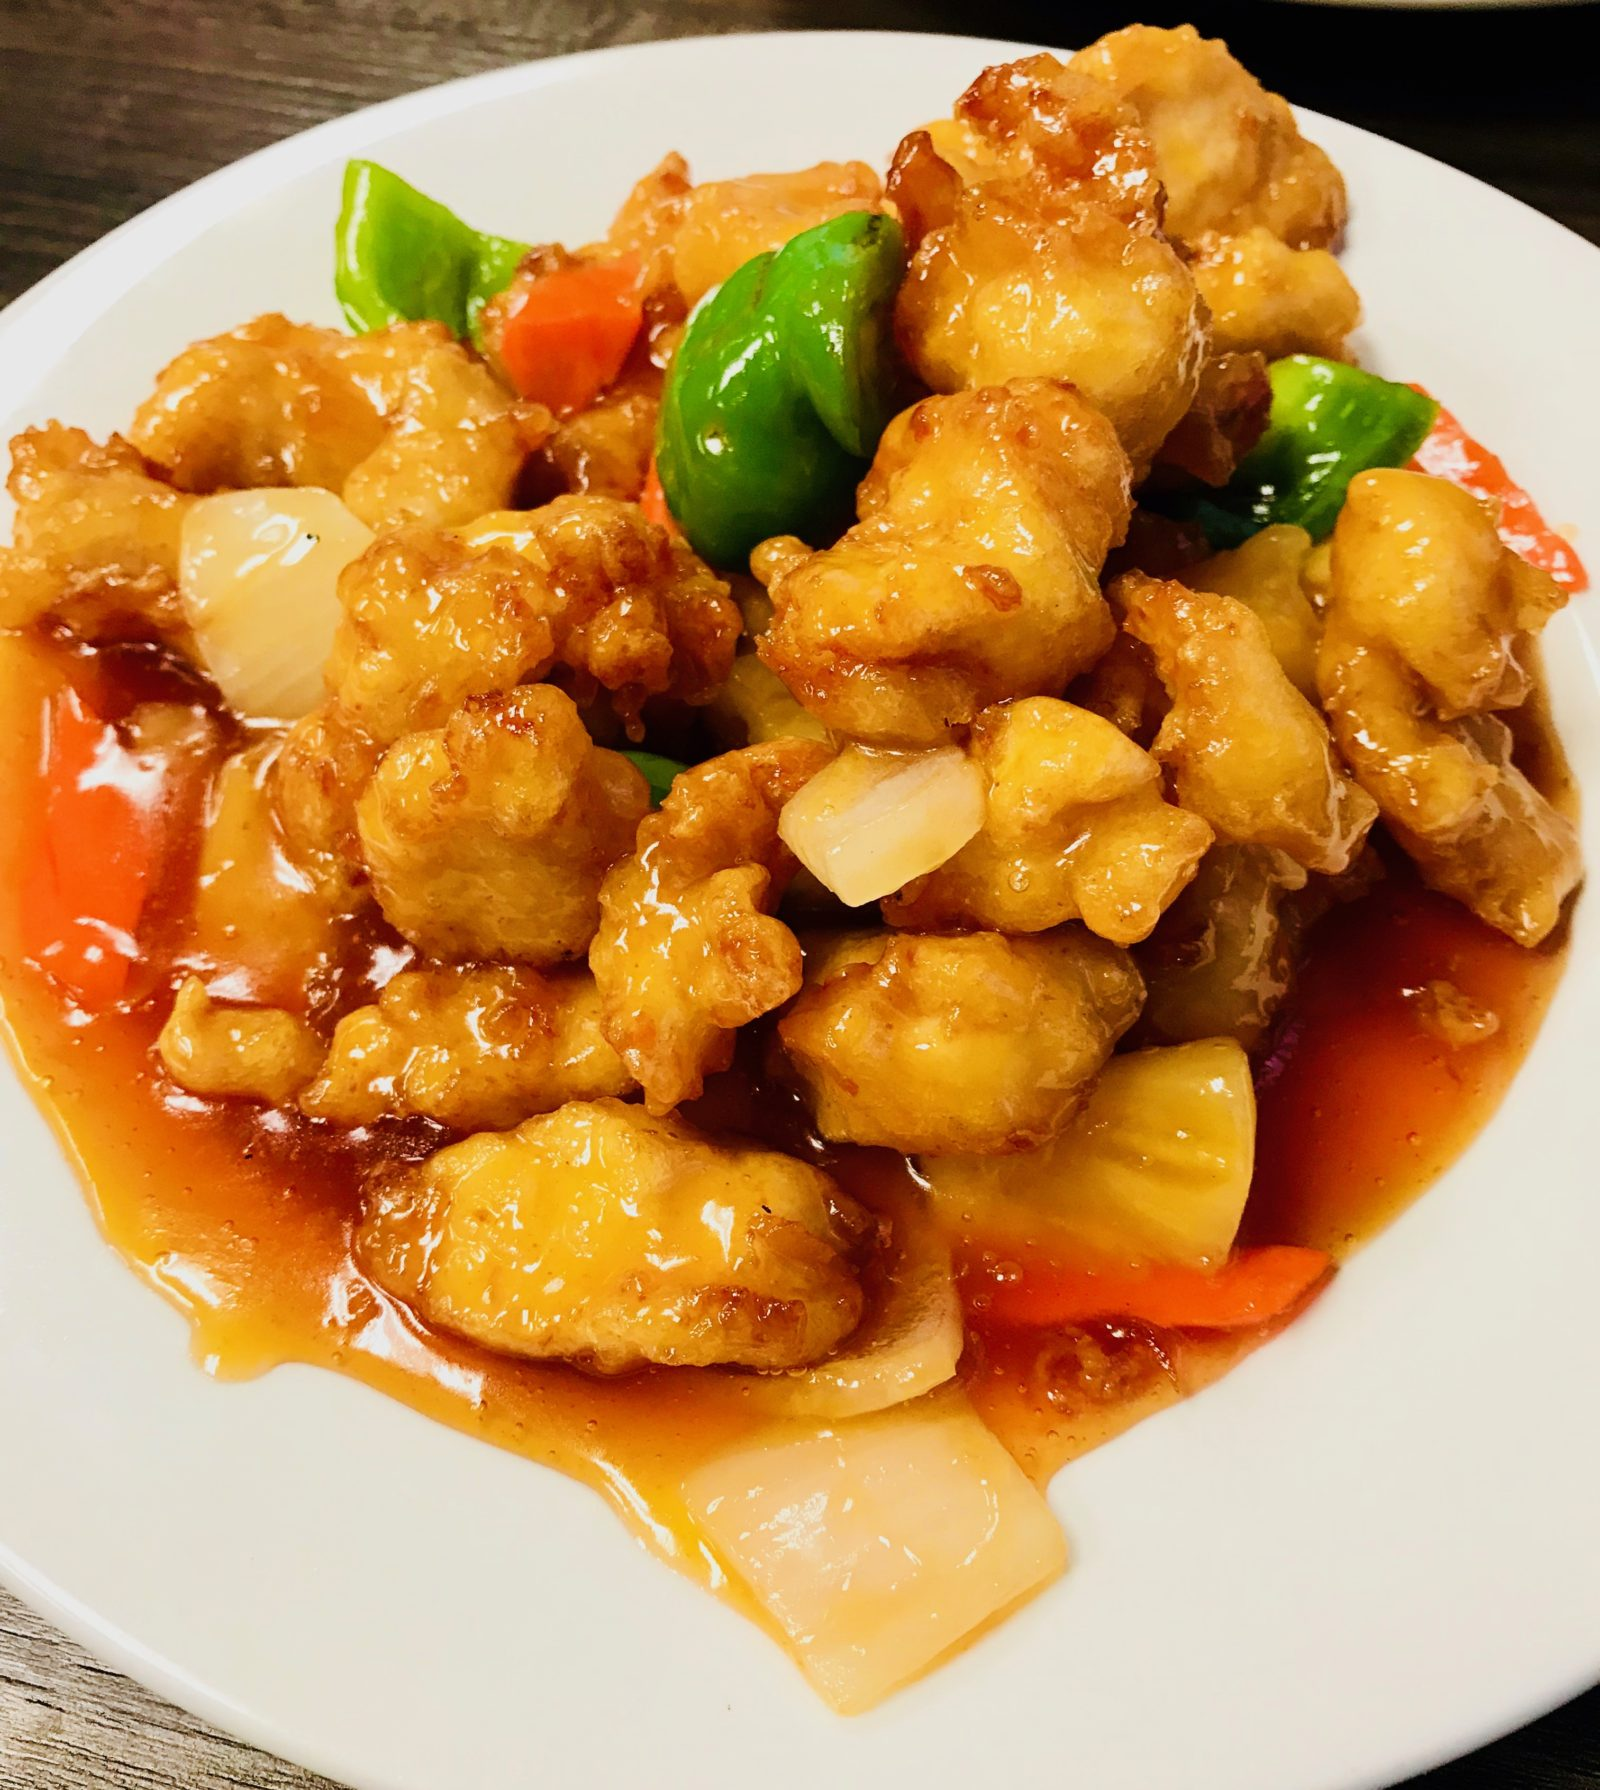 Pick of the Week - Asian Paradise - Honey Chicken